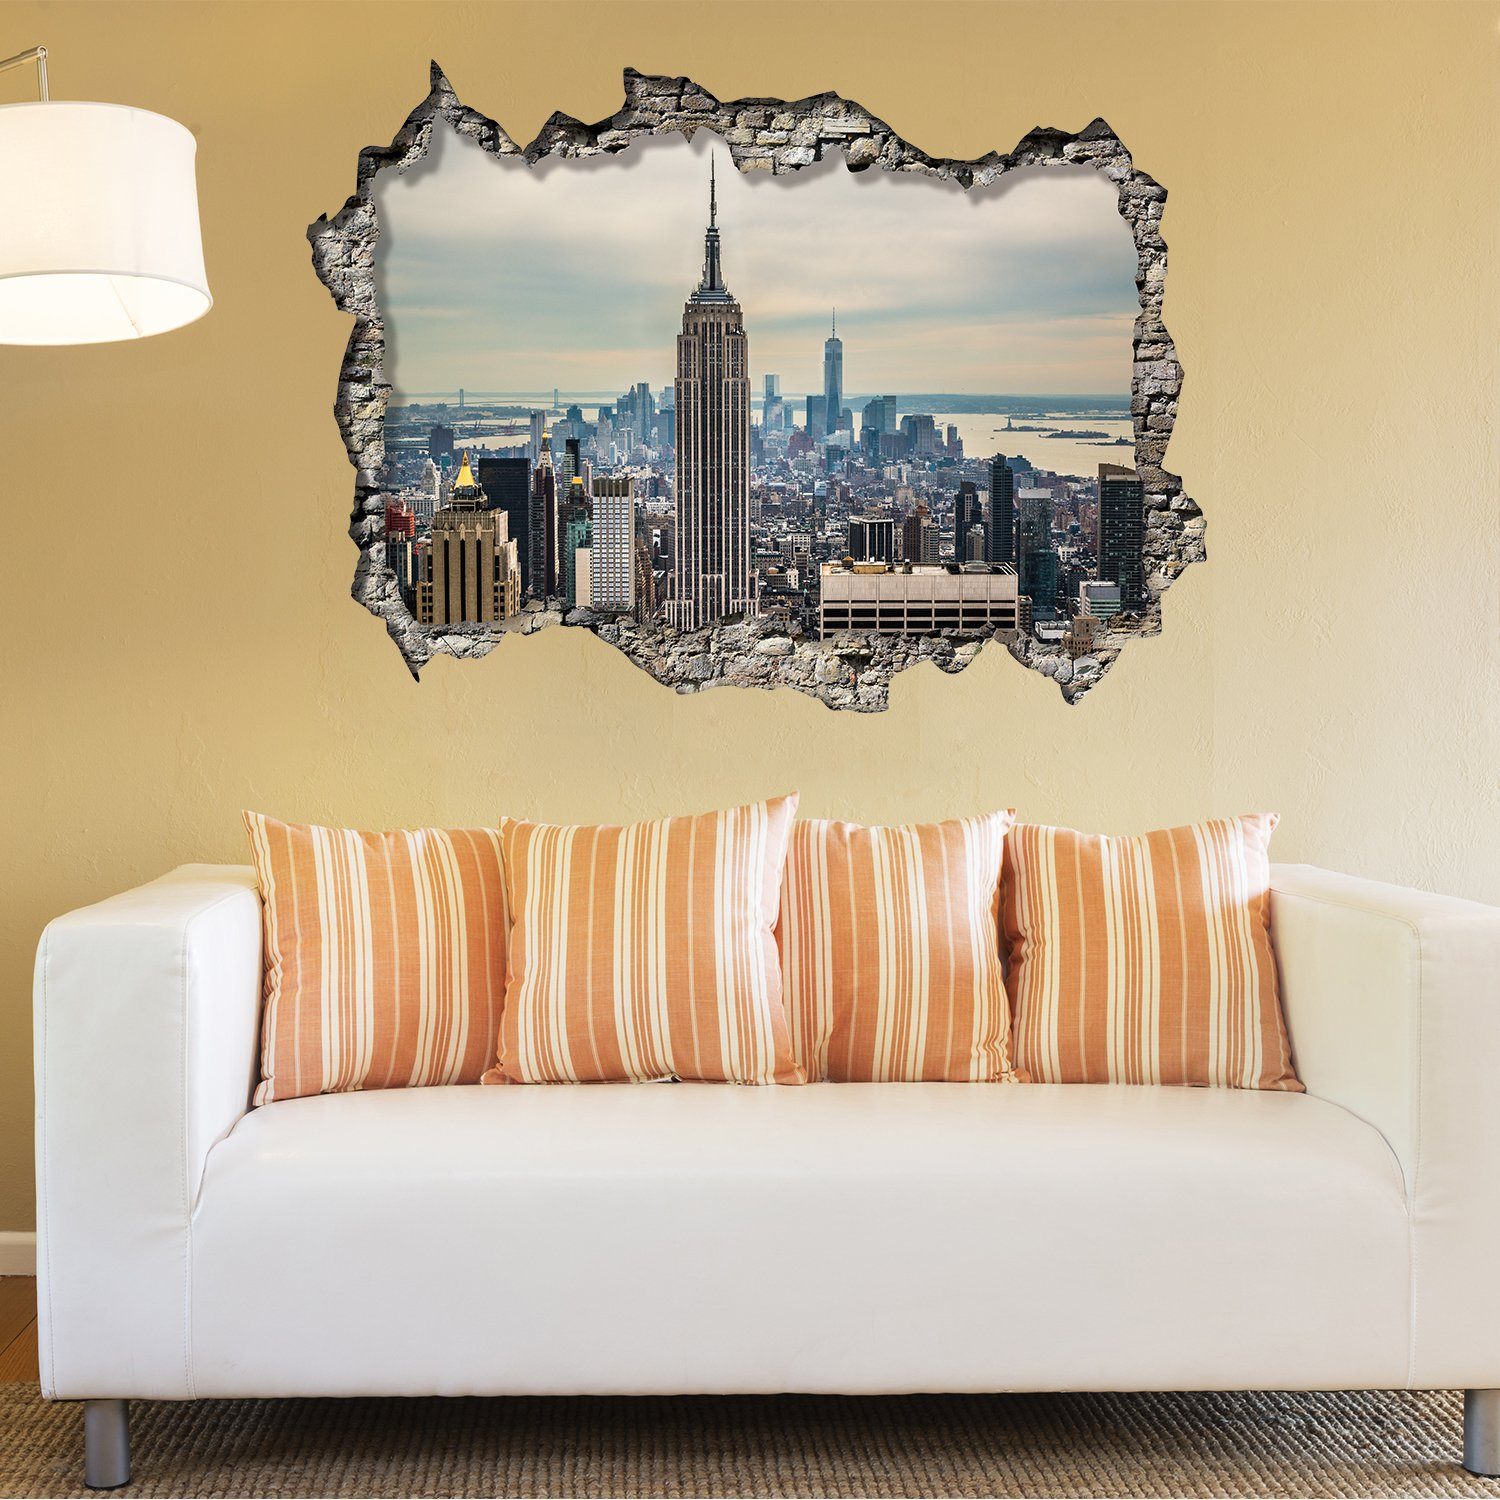 Walplus Wall Stickers New York Sunrise Mural Art Decals Vinyl Home ...